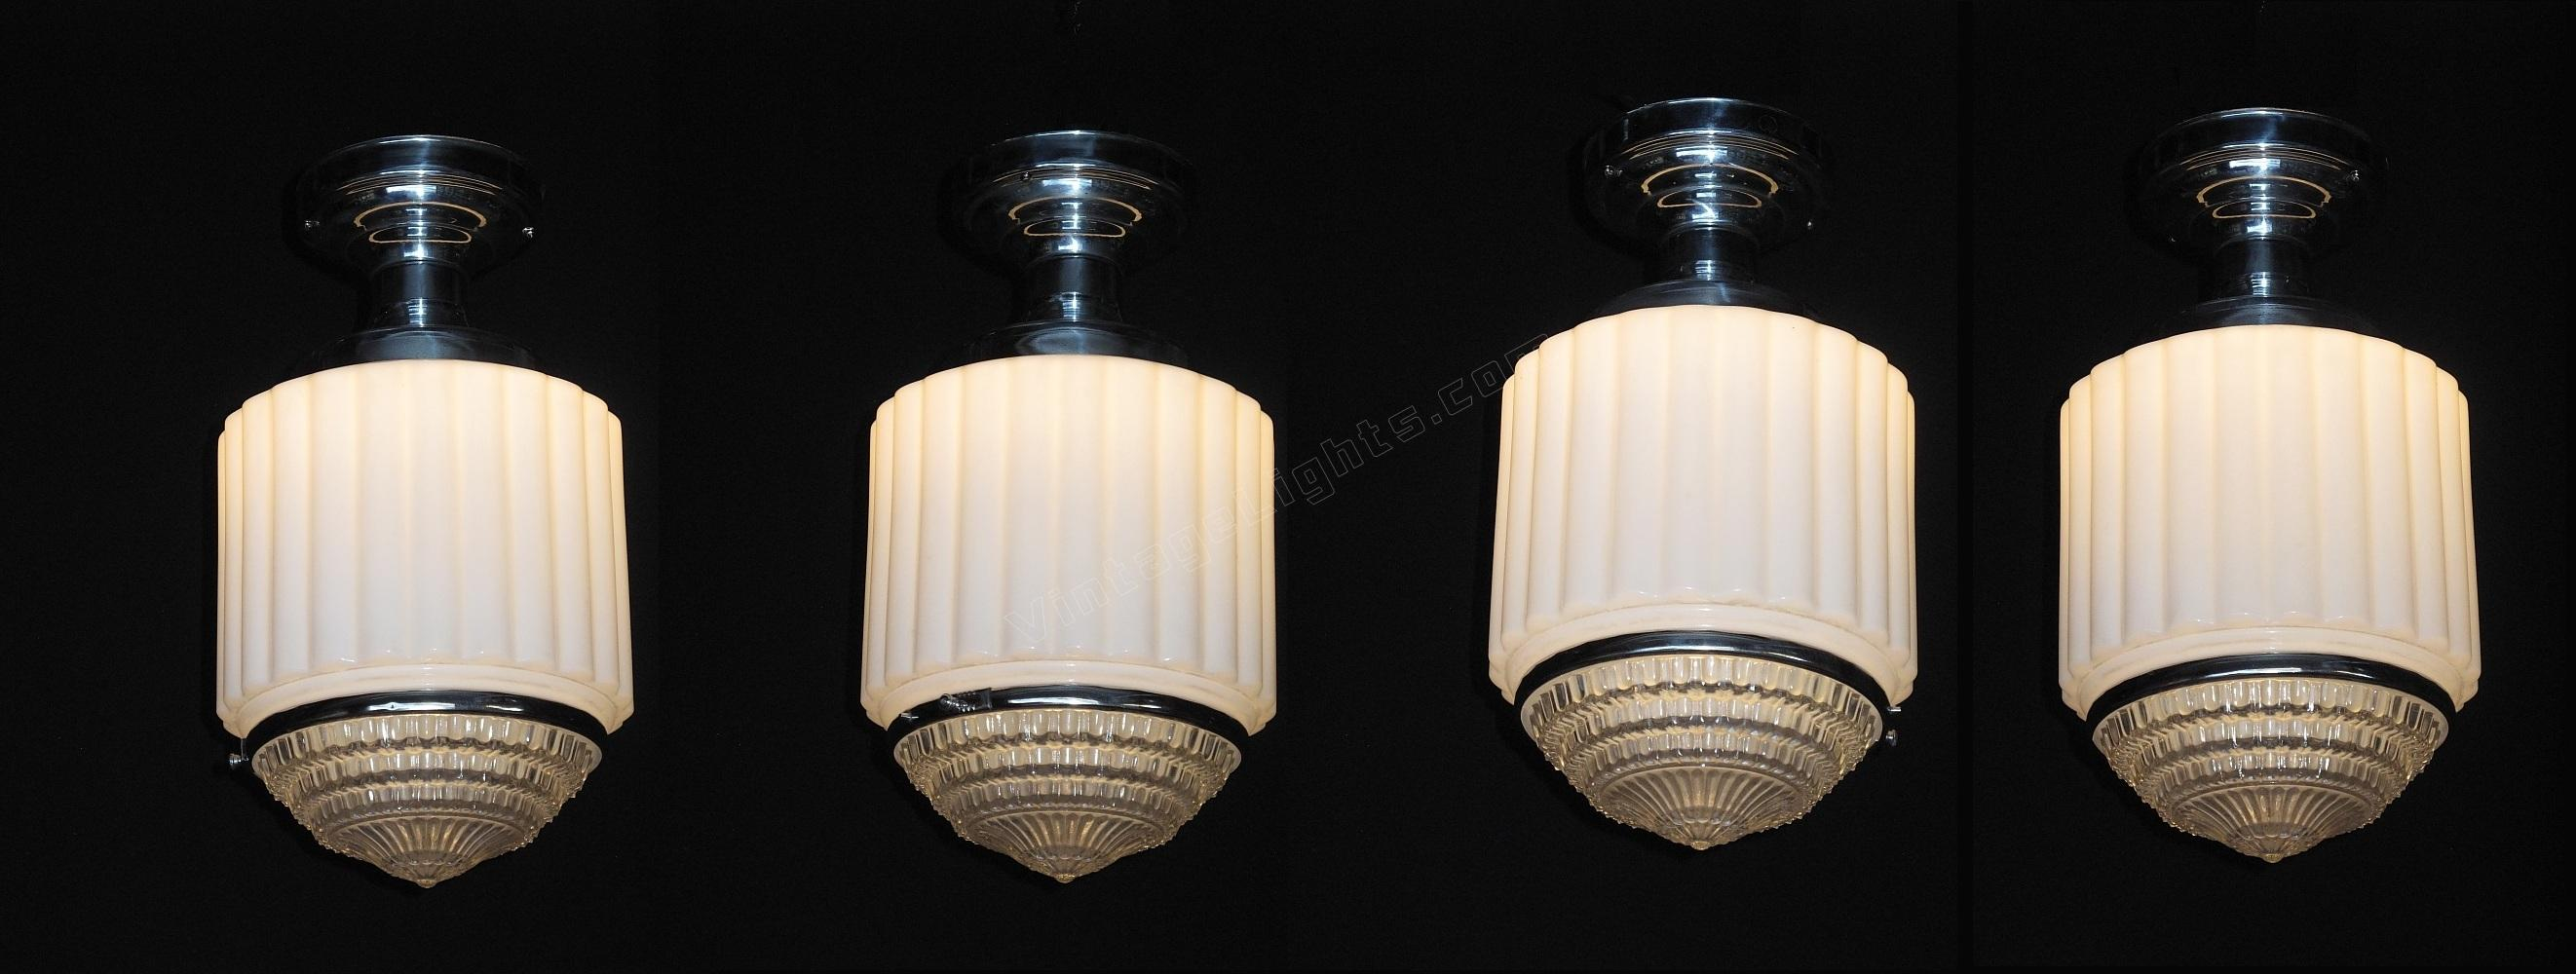 Vintage schoolhouse art deco lighting fixtures schoolhouse light item code cei20110107001 sold year 1920 1930 arubaitofo Gallery